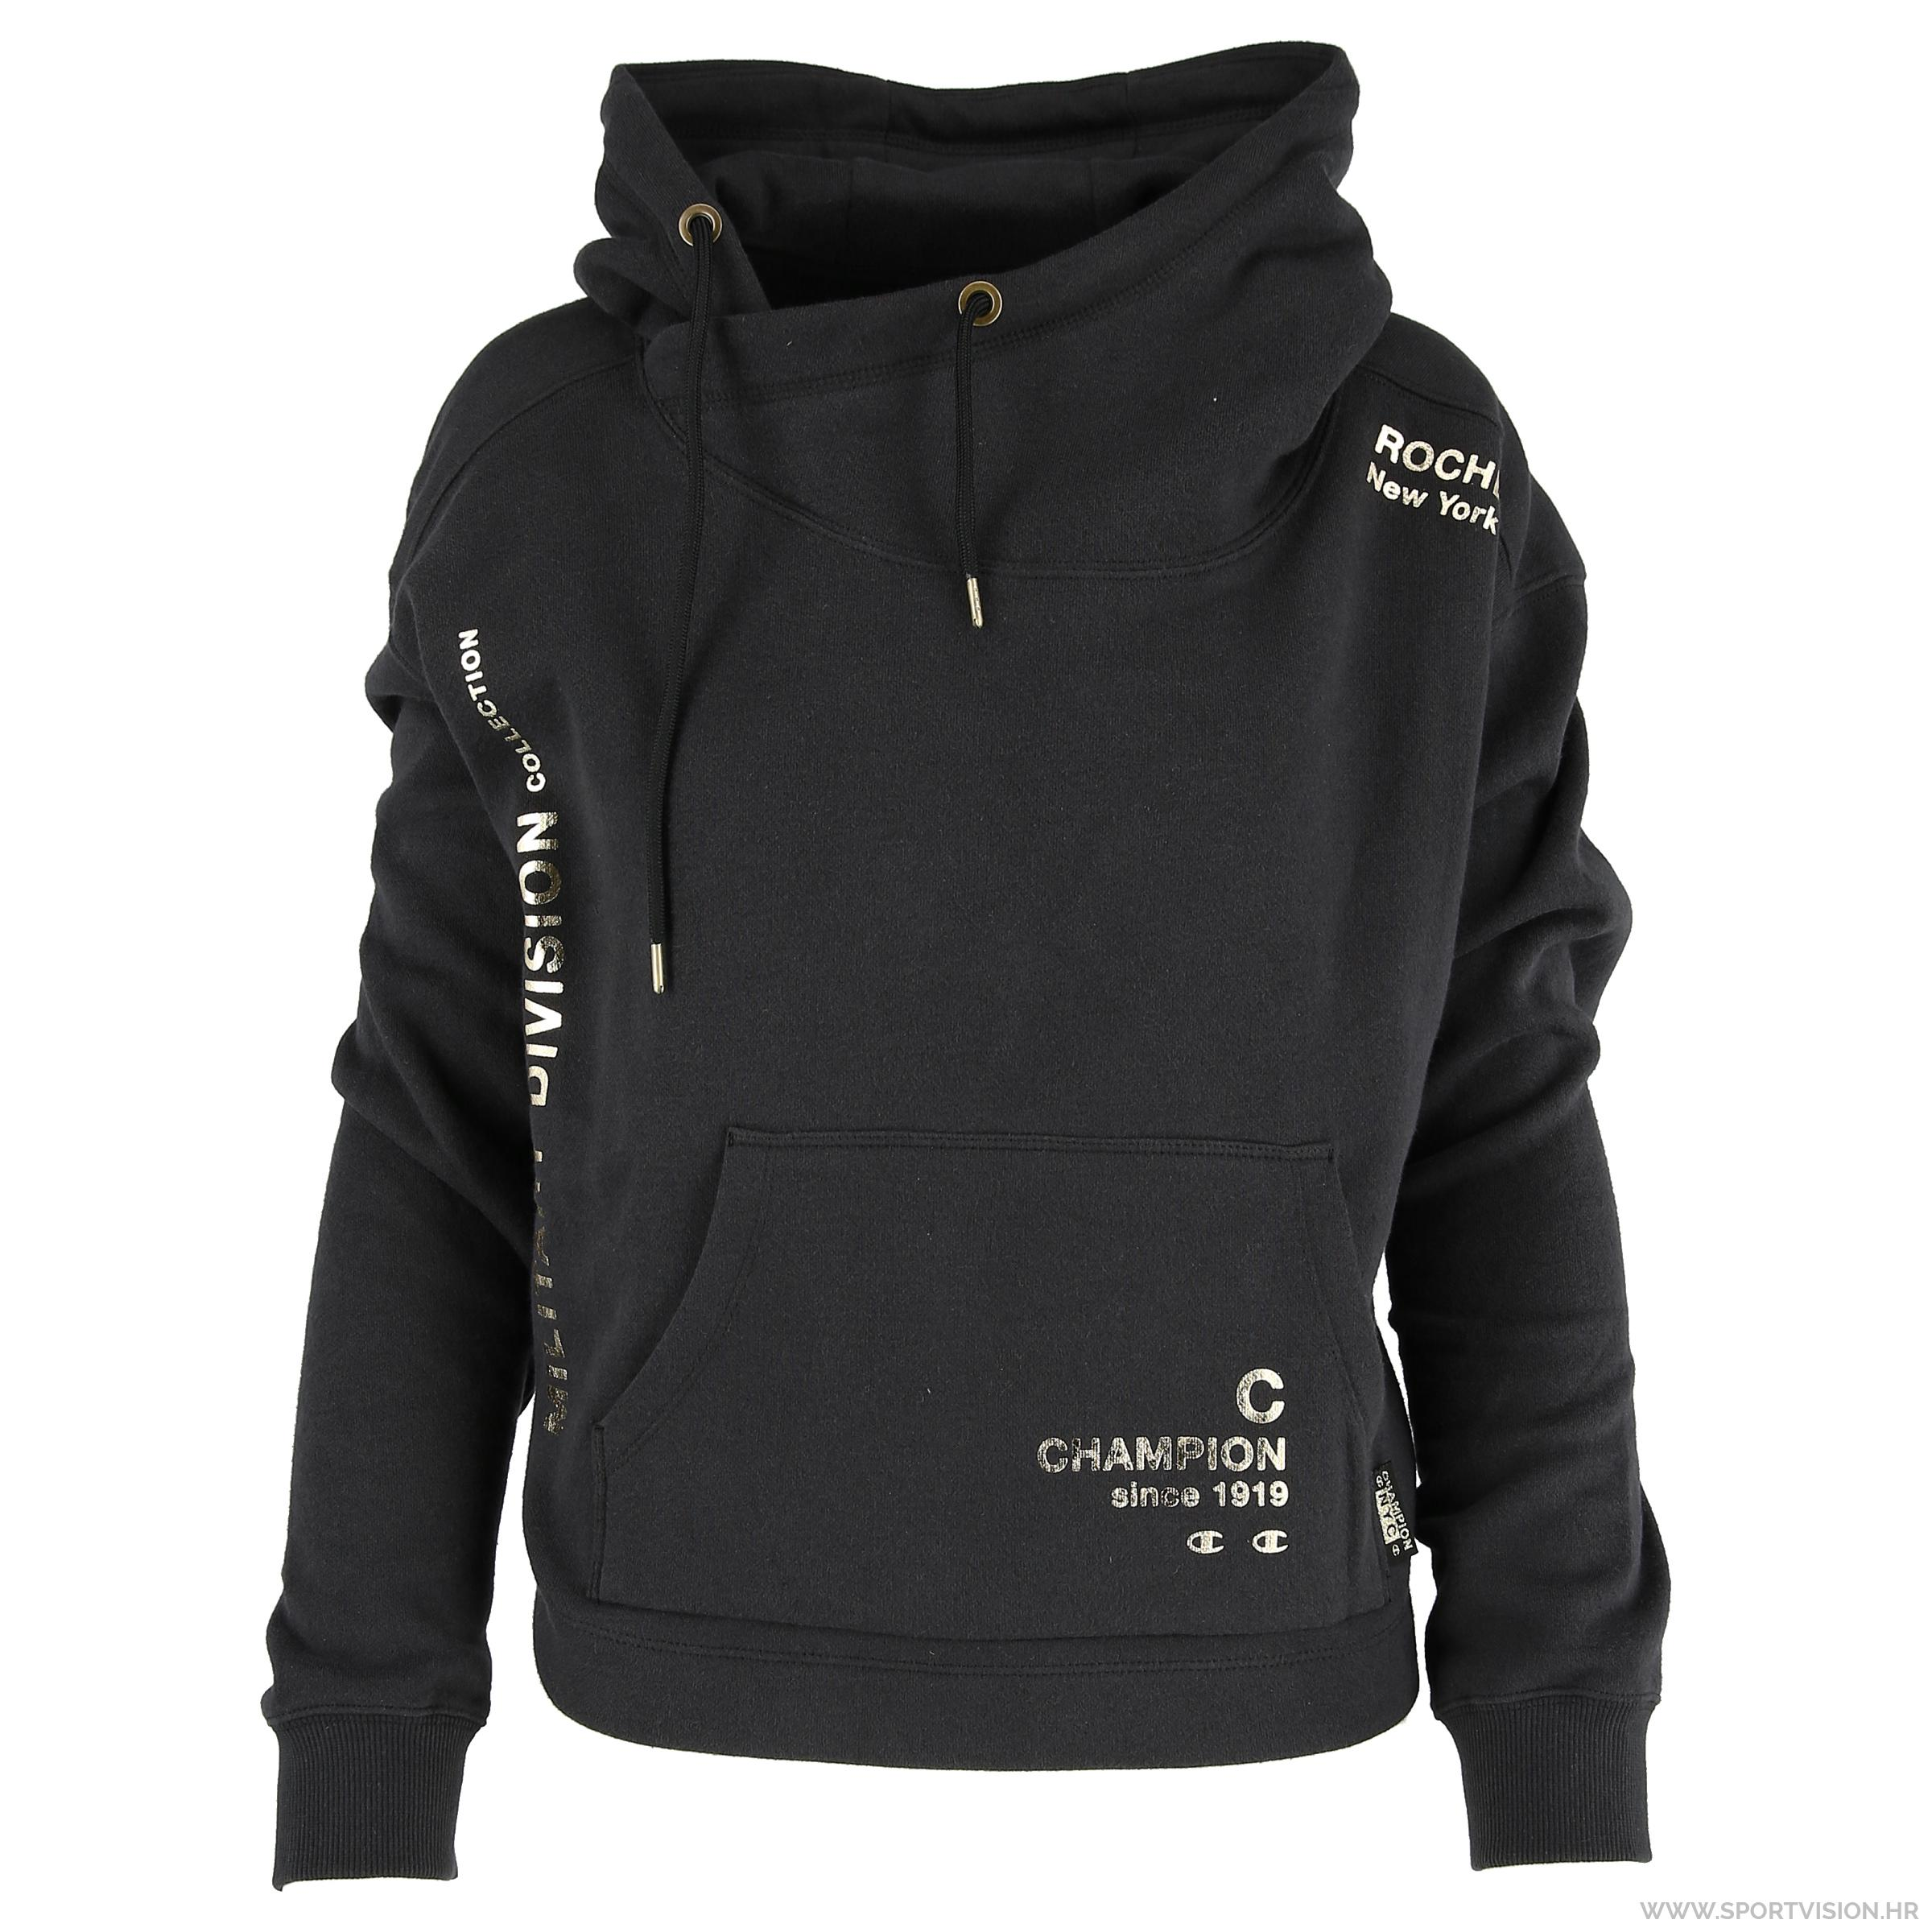 CHAMPION sweatshirt HOODED